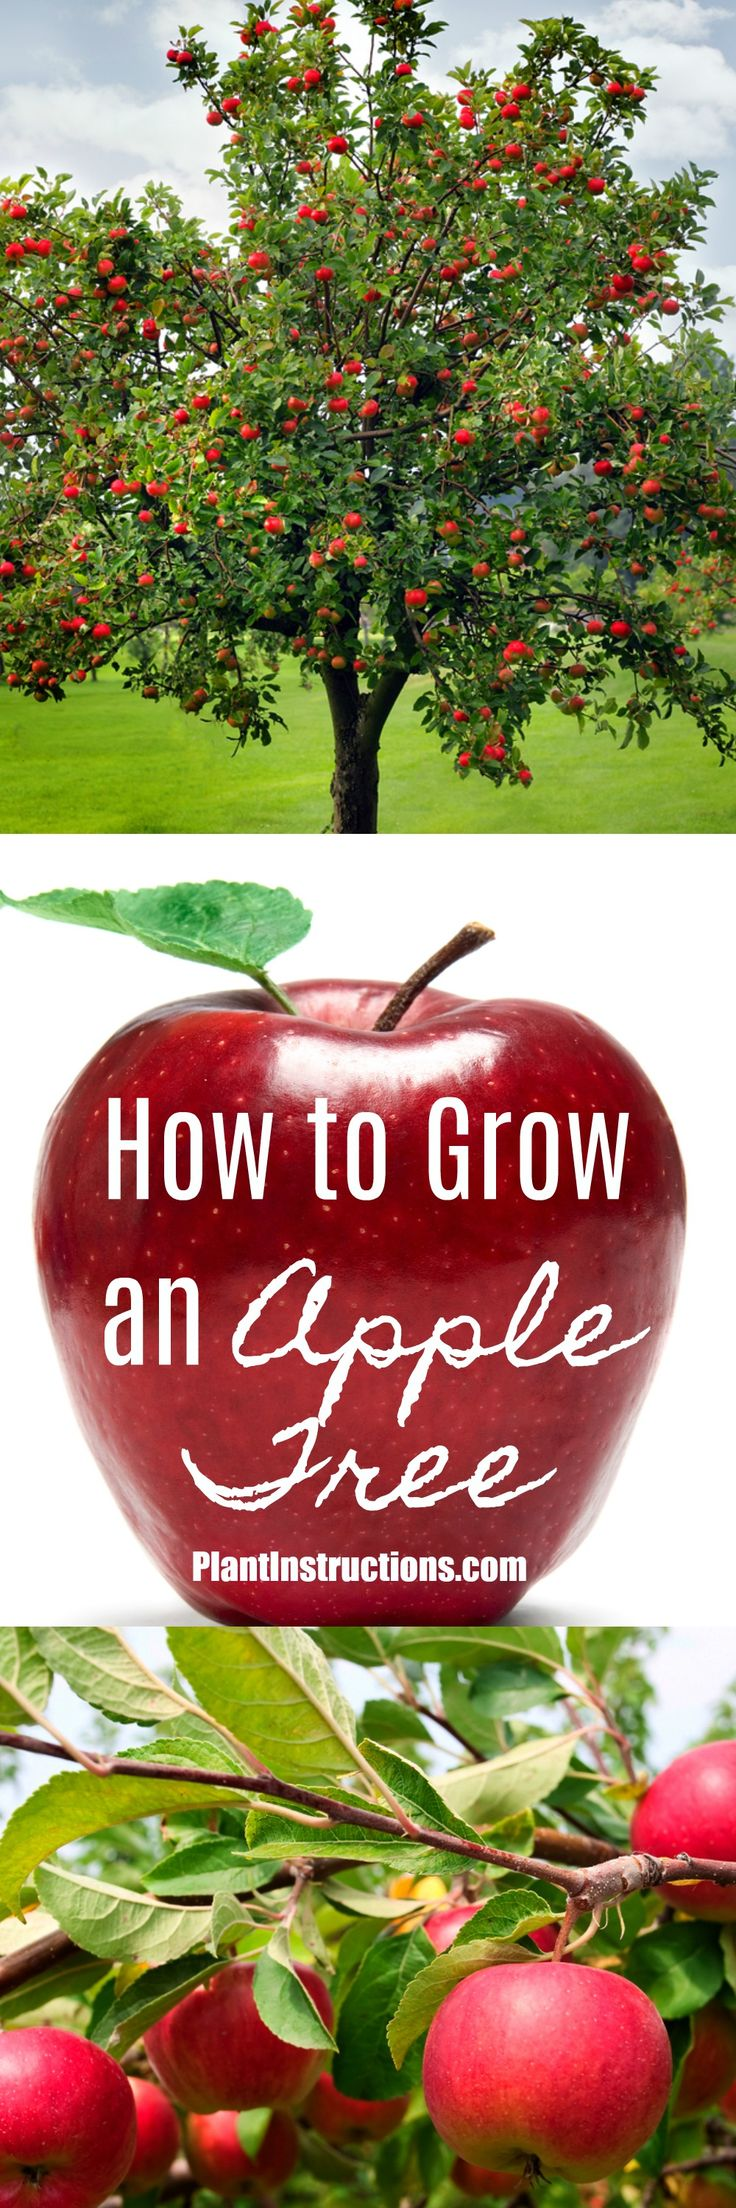 How to Grow an Apple Tree